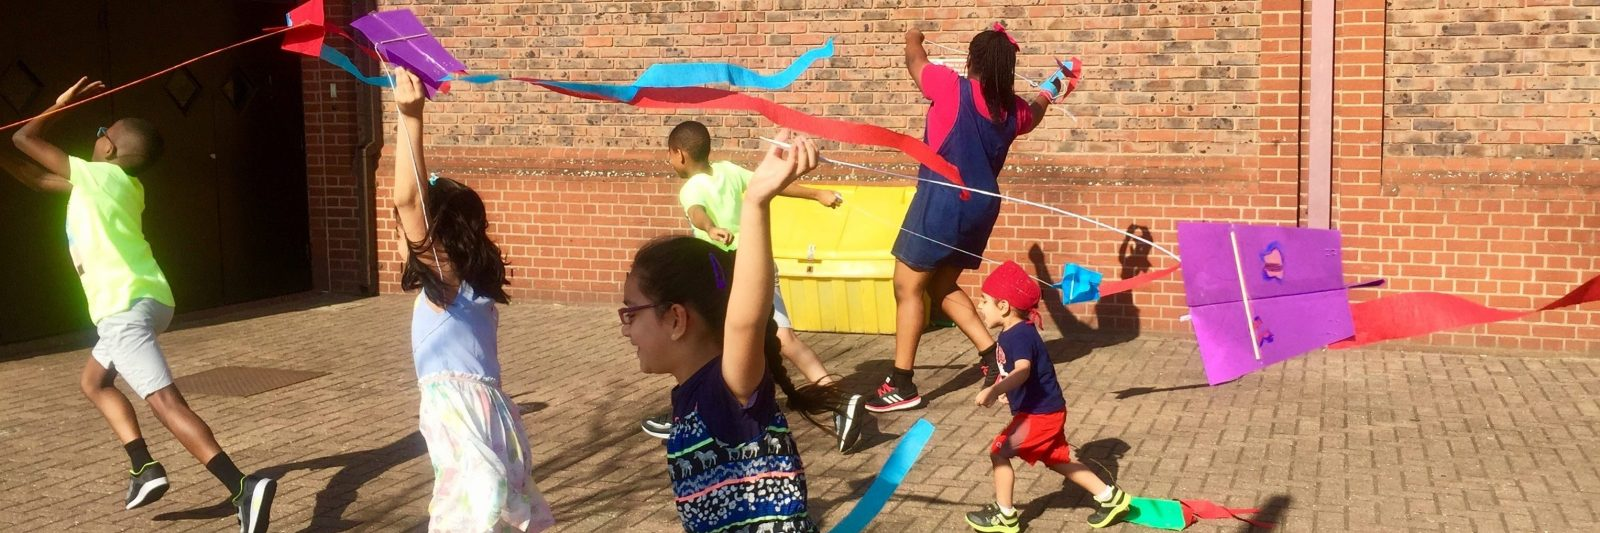 Children playing at Surrey Quays Shopping Centre with the kites they made at Crafty Beasts